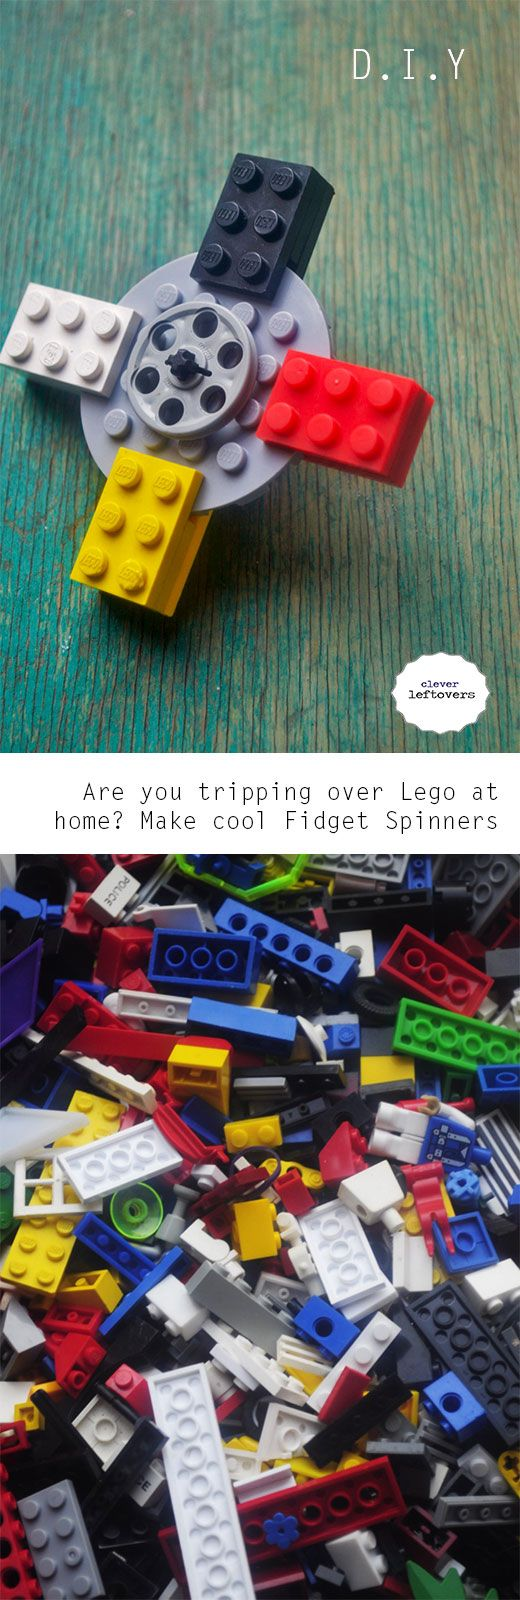 Used lego made cool!